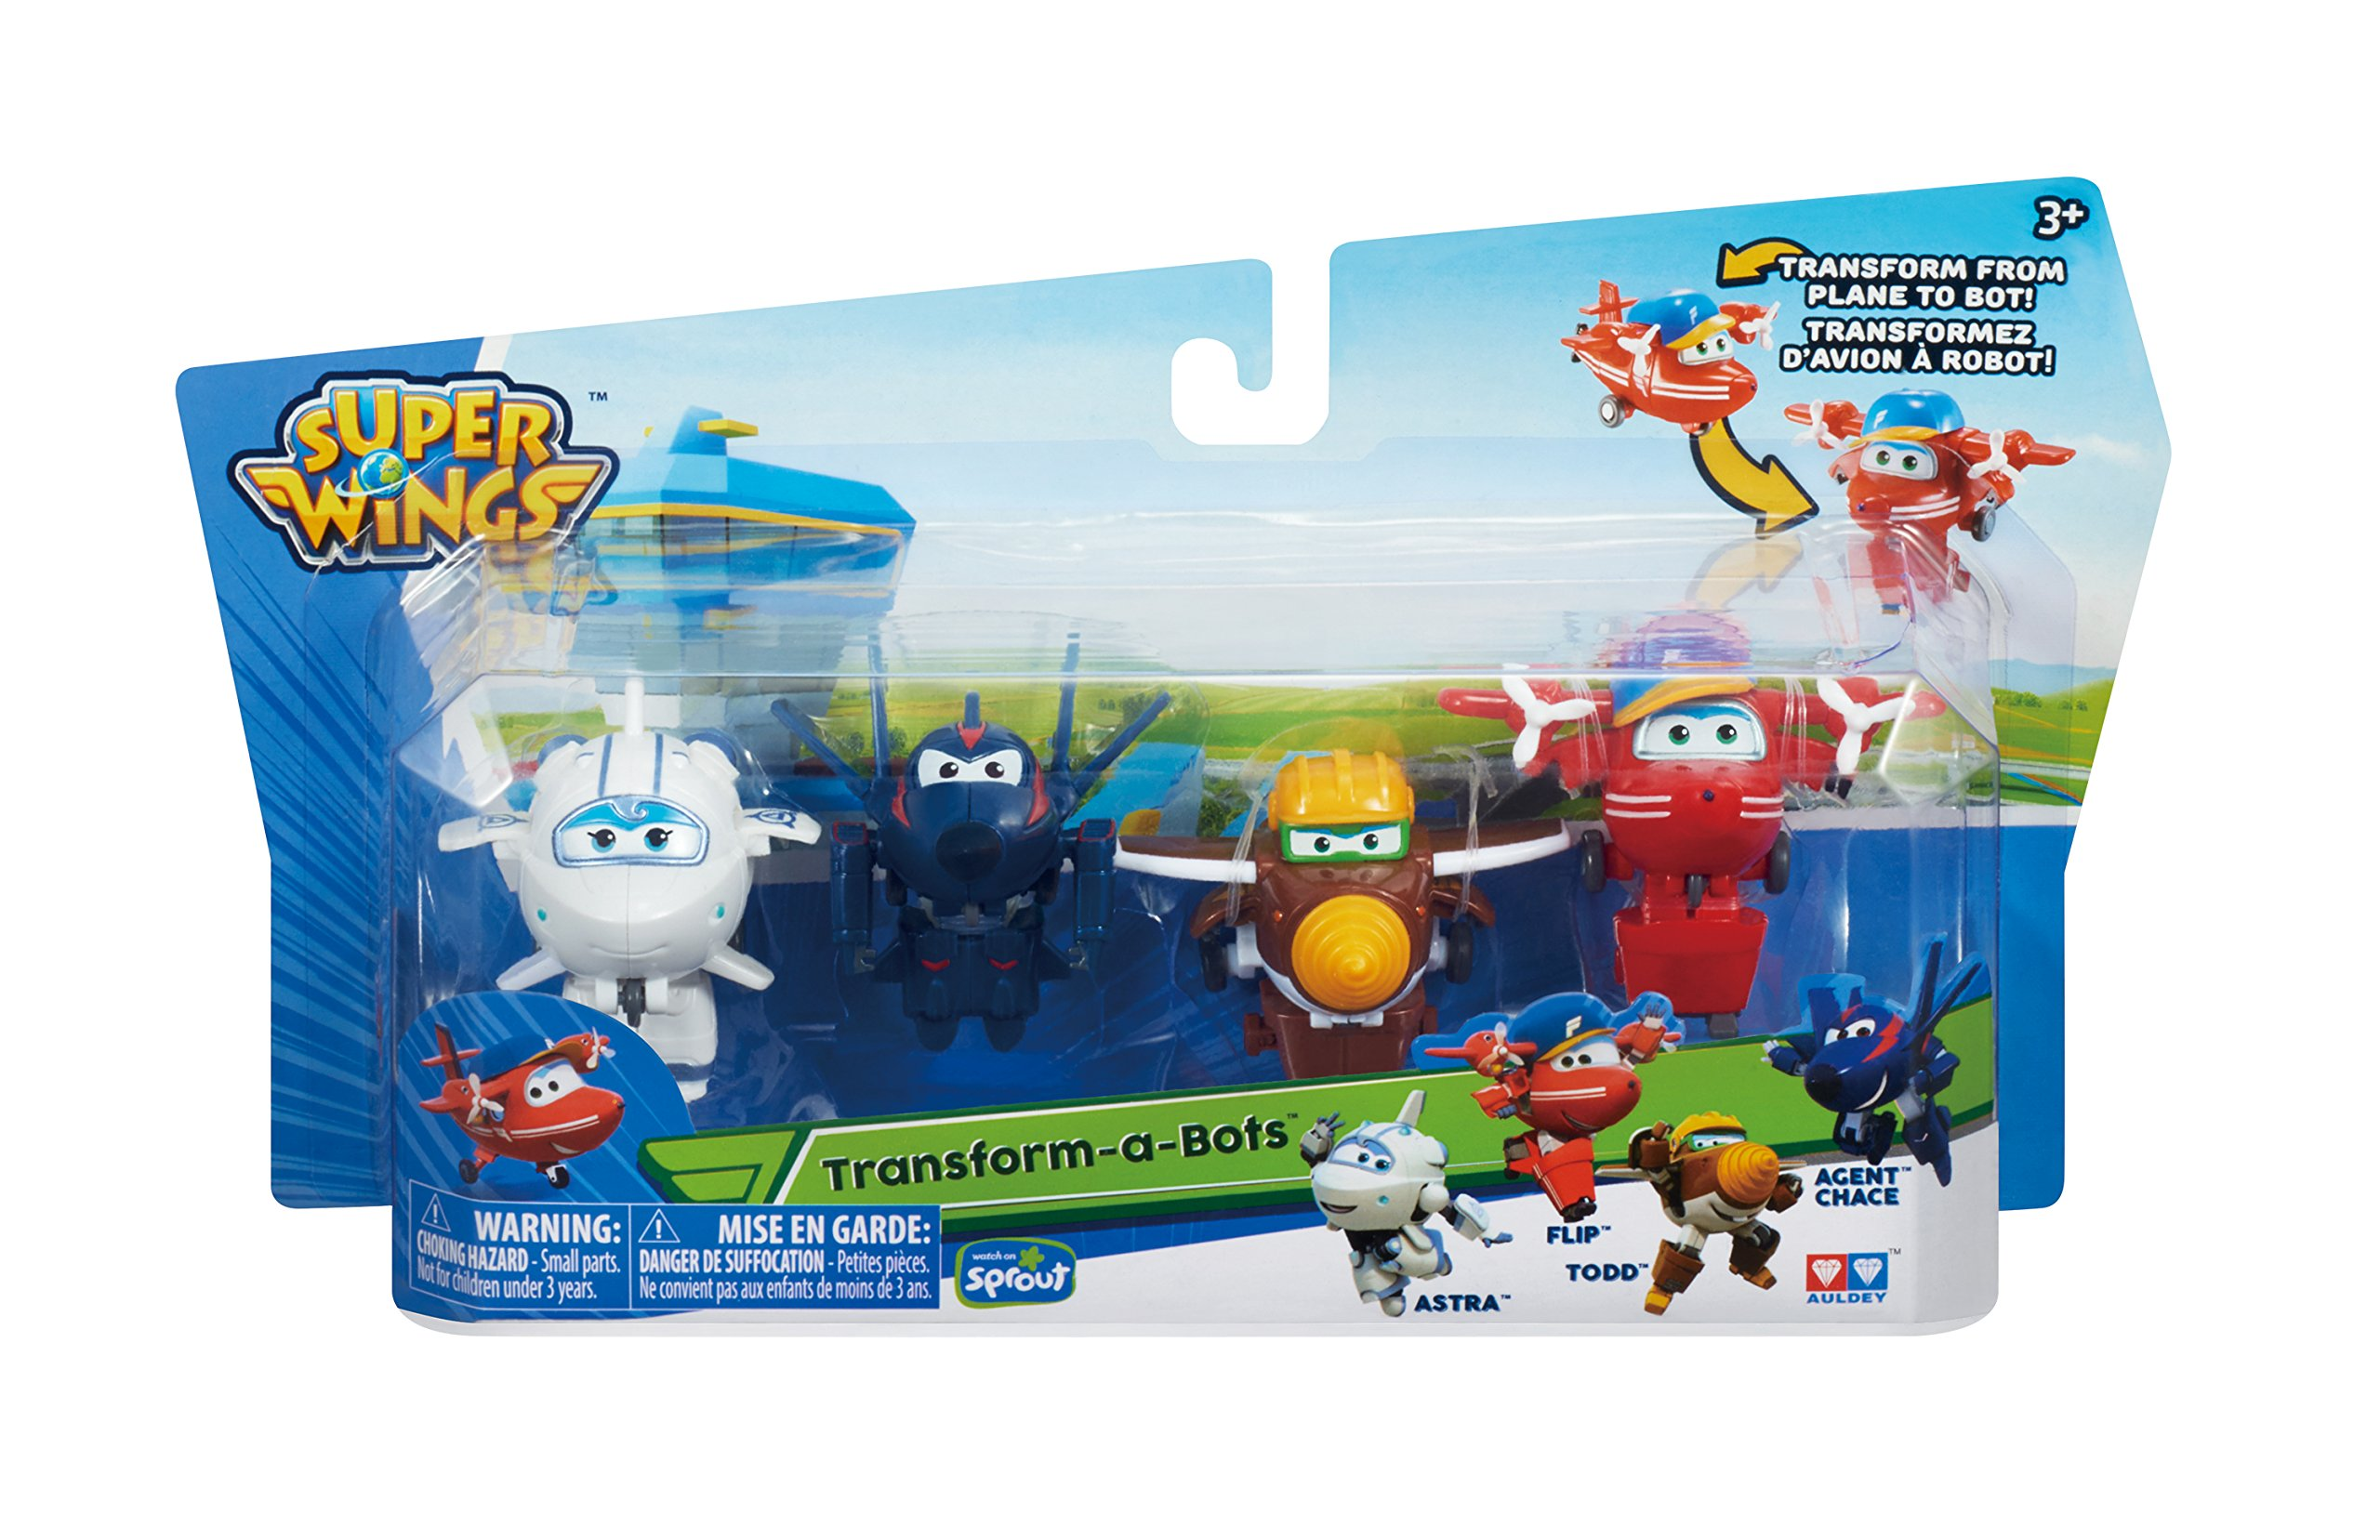 Super Wings Transform-a-Bots 4 Pack | | Flip, Todd, Agent Chase, Astra, | 2'' Scale